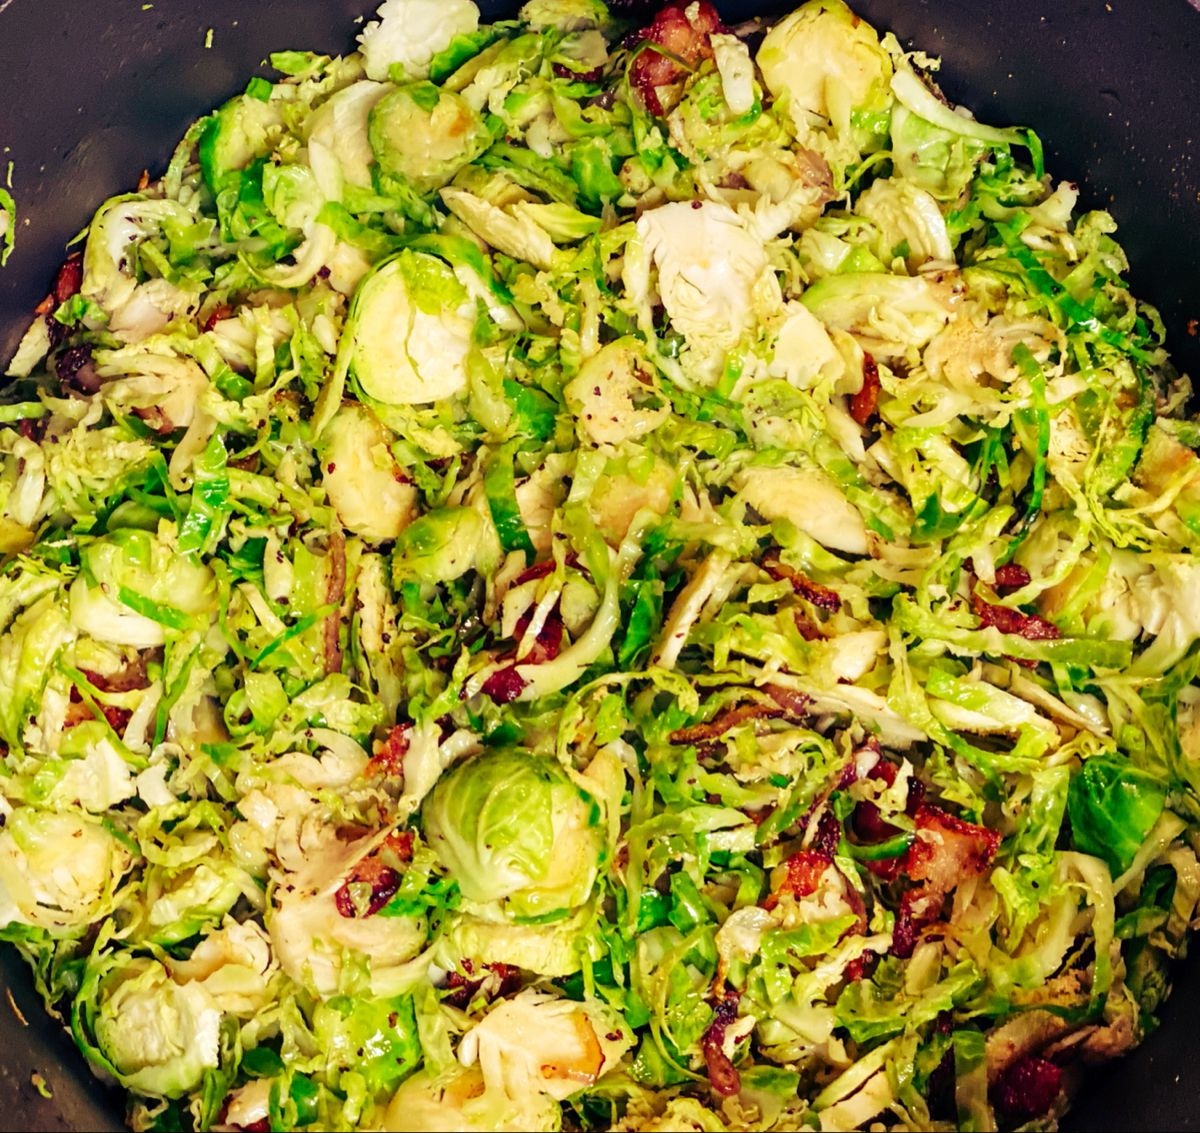 Sautéd Shredded Brussels Sprouts...No Really #supergood Greg Reilly #style Brussels Sprouts Shredded, Shallots, Garlic Olive Oil, Bacon, Splash of Balsamic Vinegar! That's it #easyrecipes #eatyourveggies #tasty #greens #homecooked